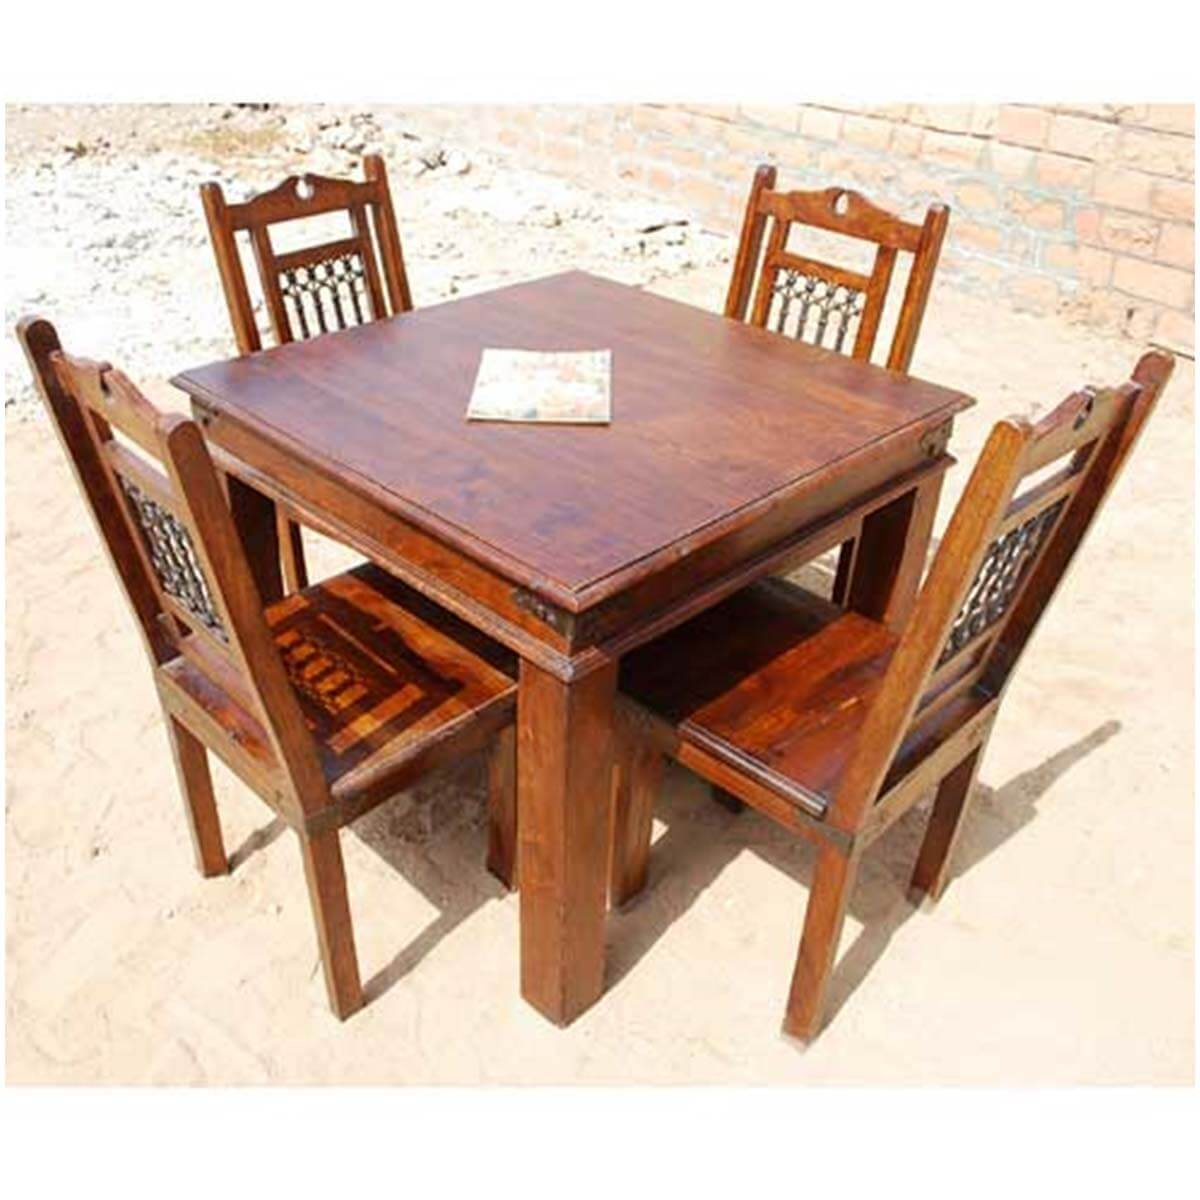 Wooden square dining table - Grogan Rustic Solid Wood Square Dining Table